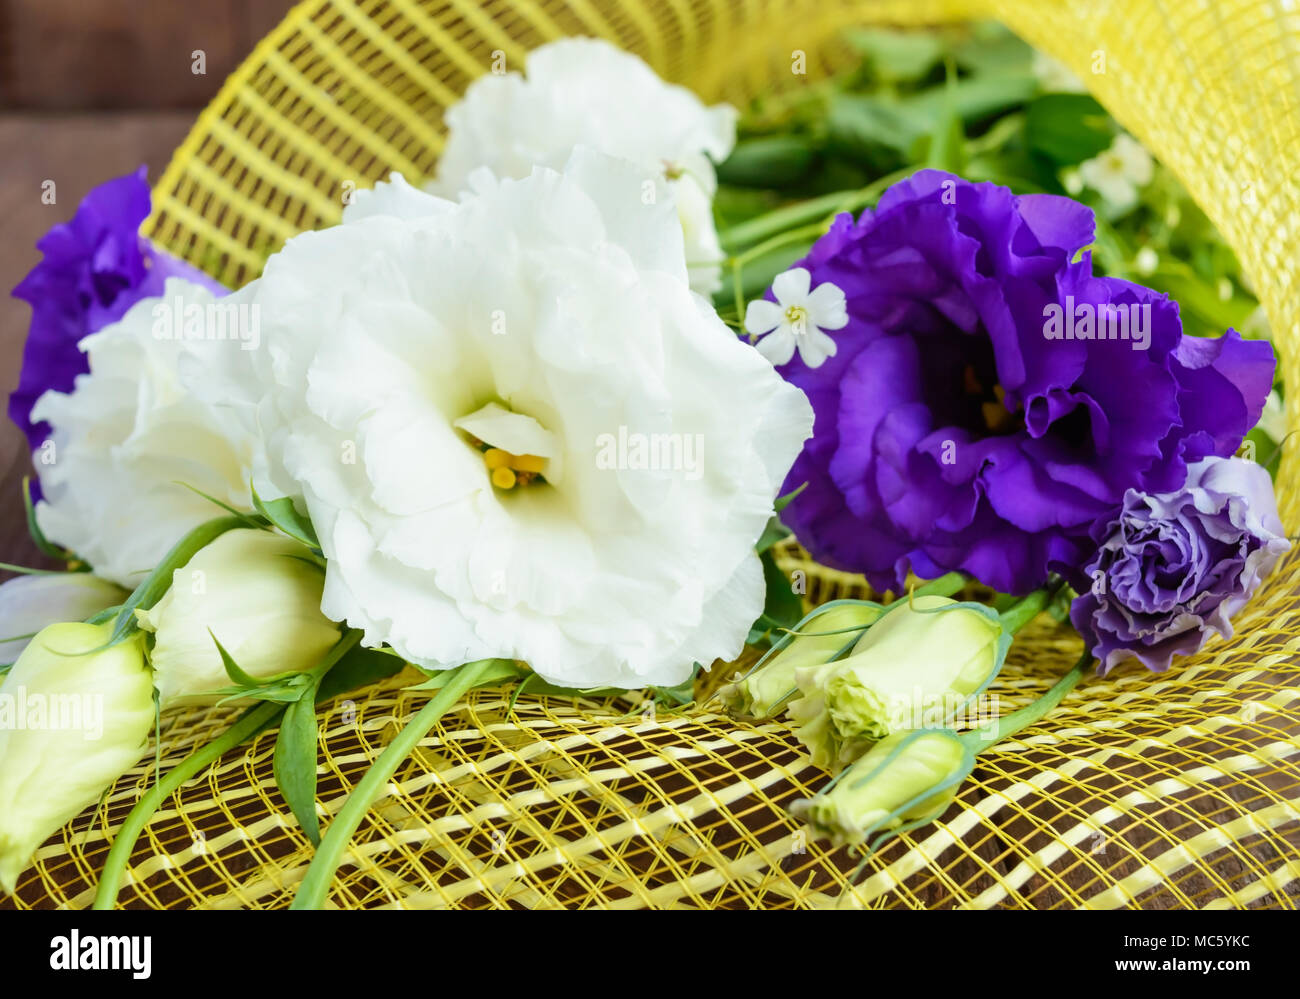 Freshly picked white and purple flowers eustomy (lisianthus)  on the wooden background. Close up Stock Photo